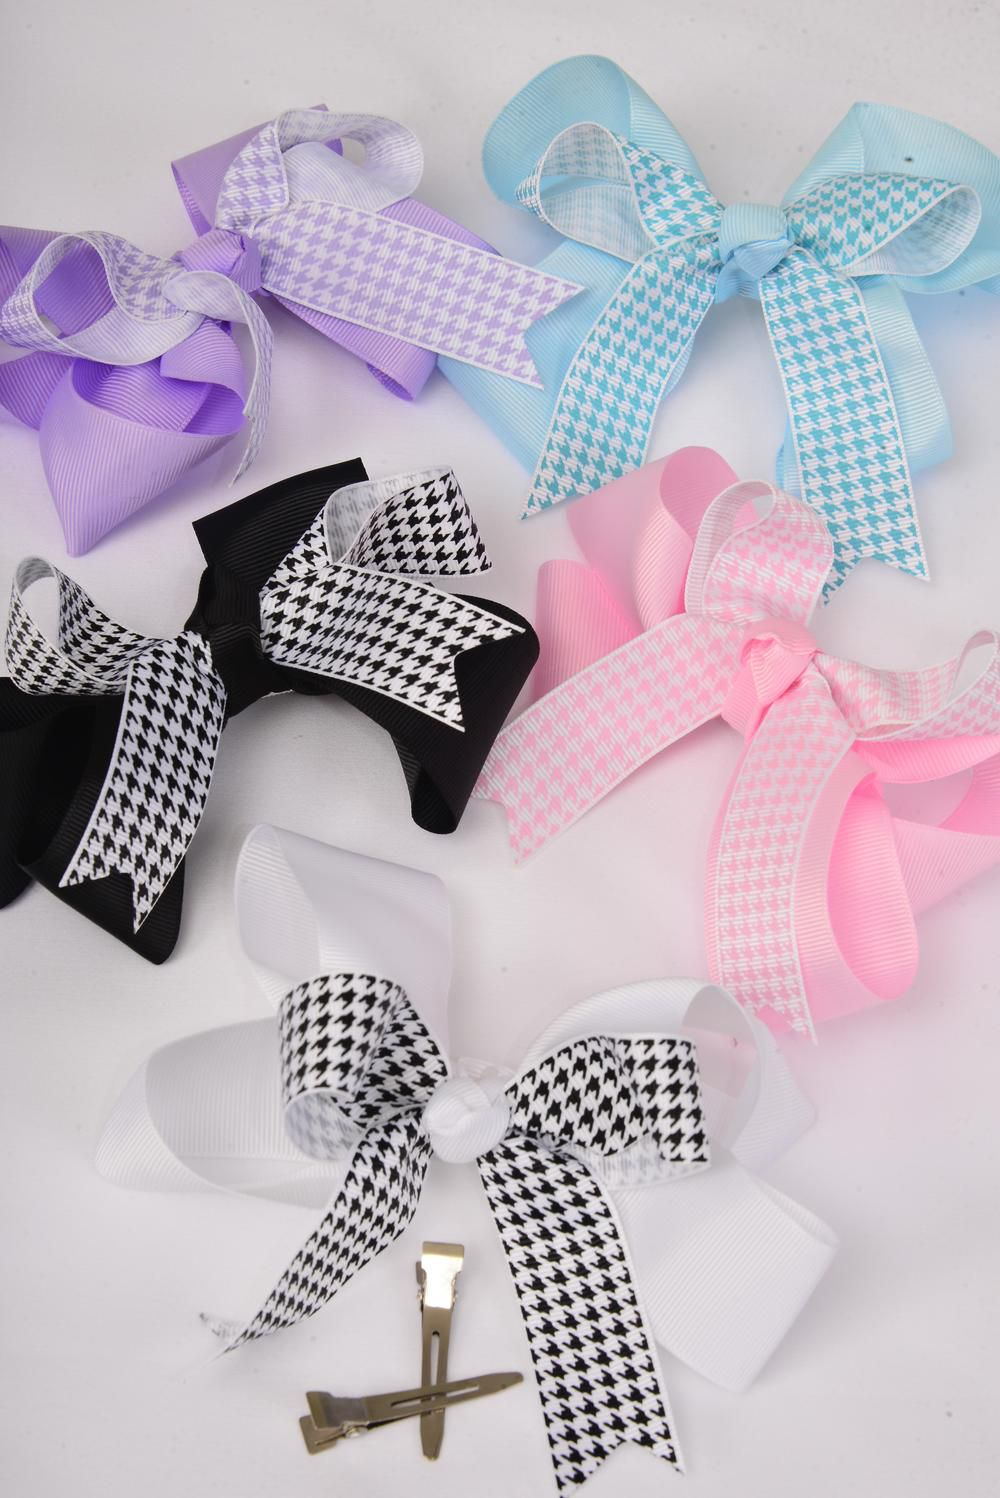 "Hair Bow Large Houndtooth Long Tail Grosgrain Bow-tie/DZ **Alligator Clip** Size-6""x 5"" Wide,3 Black,3 White,2 Pink,2 Blue,2 Lavender,5 Color Asst,Clip Strip & UPC Code."